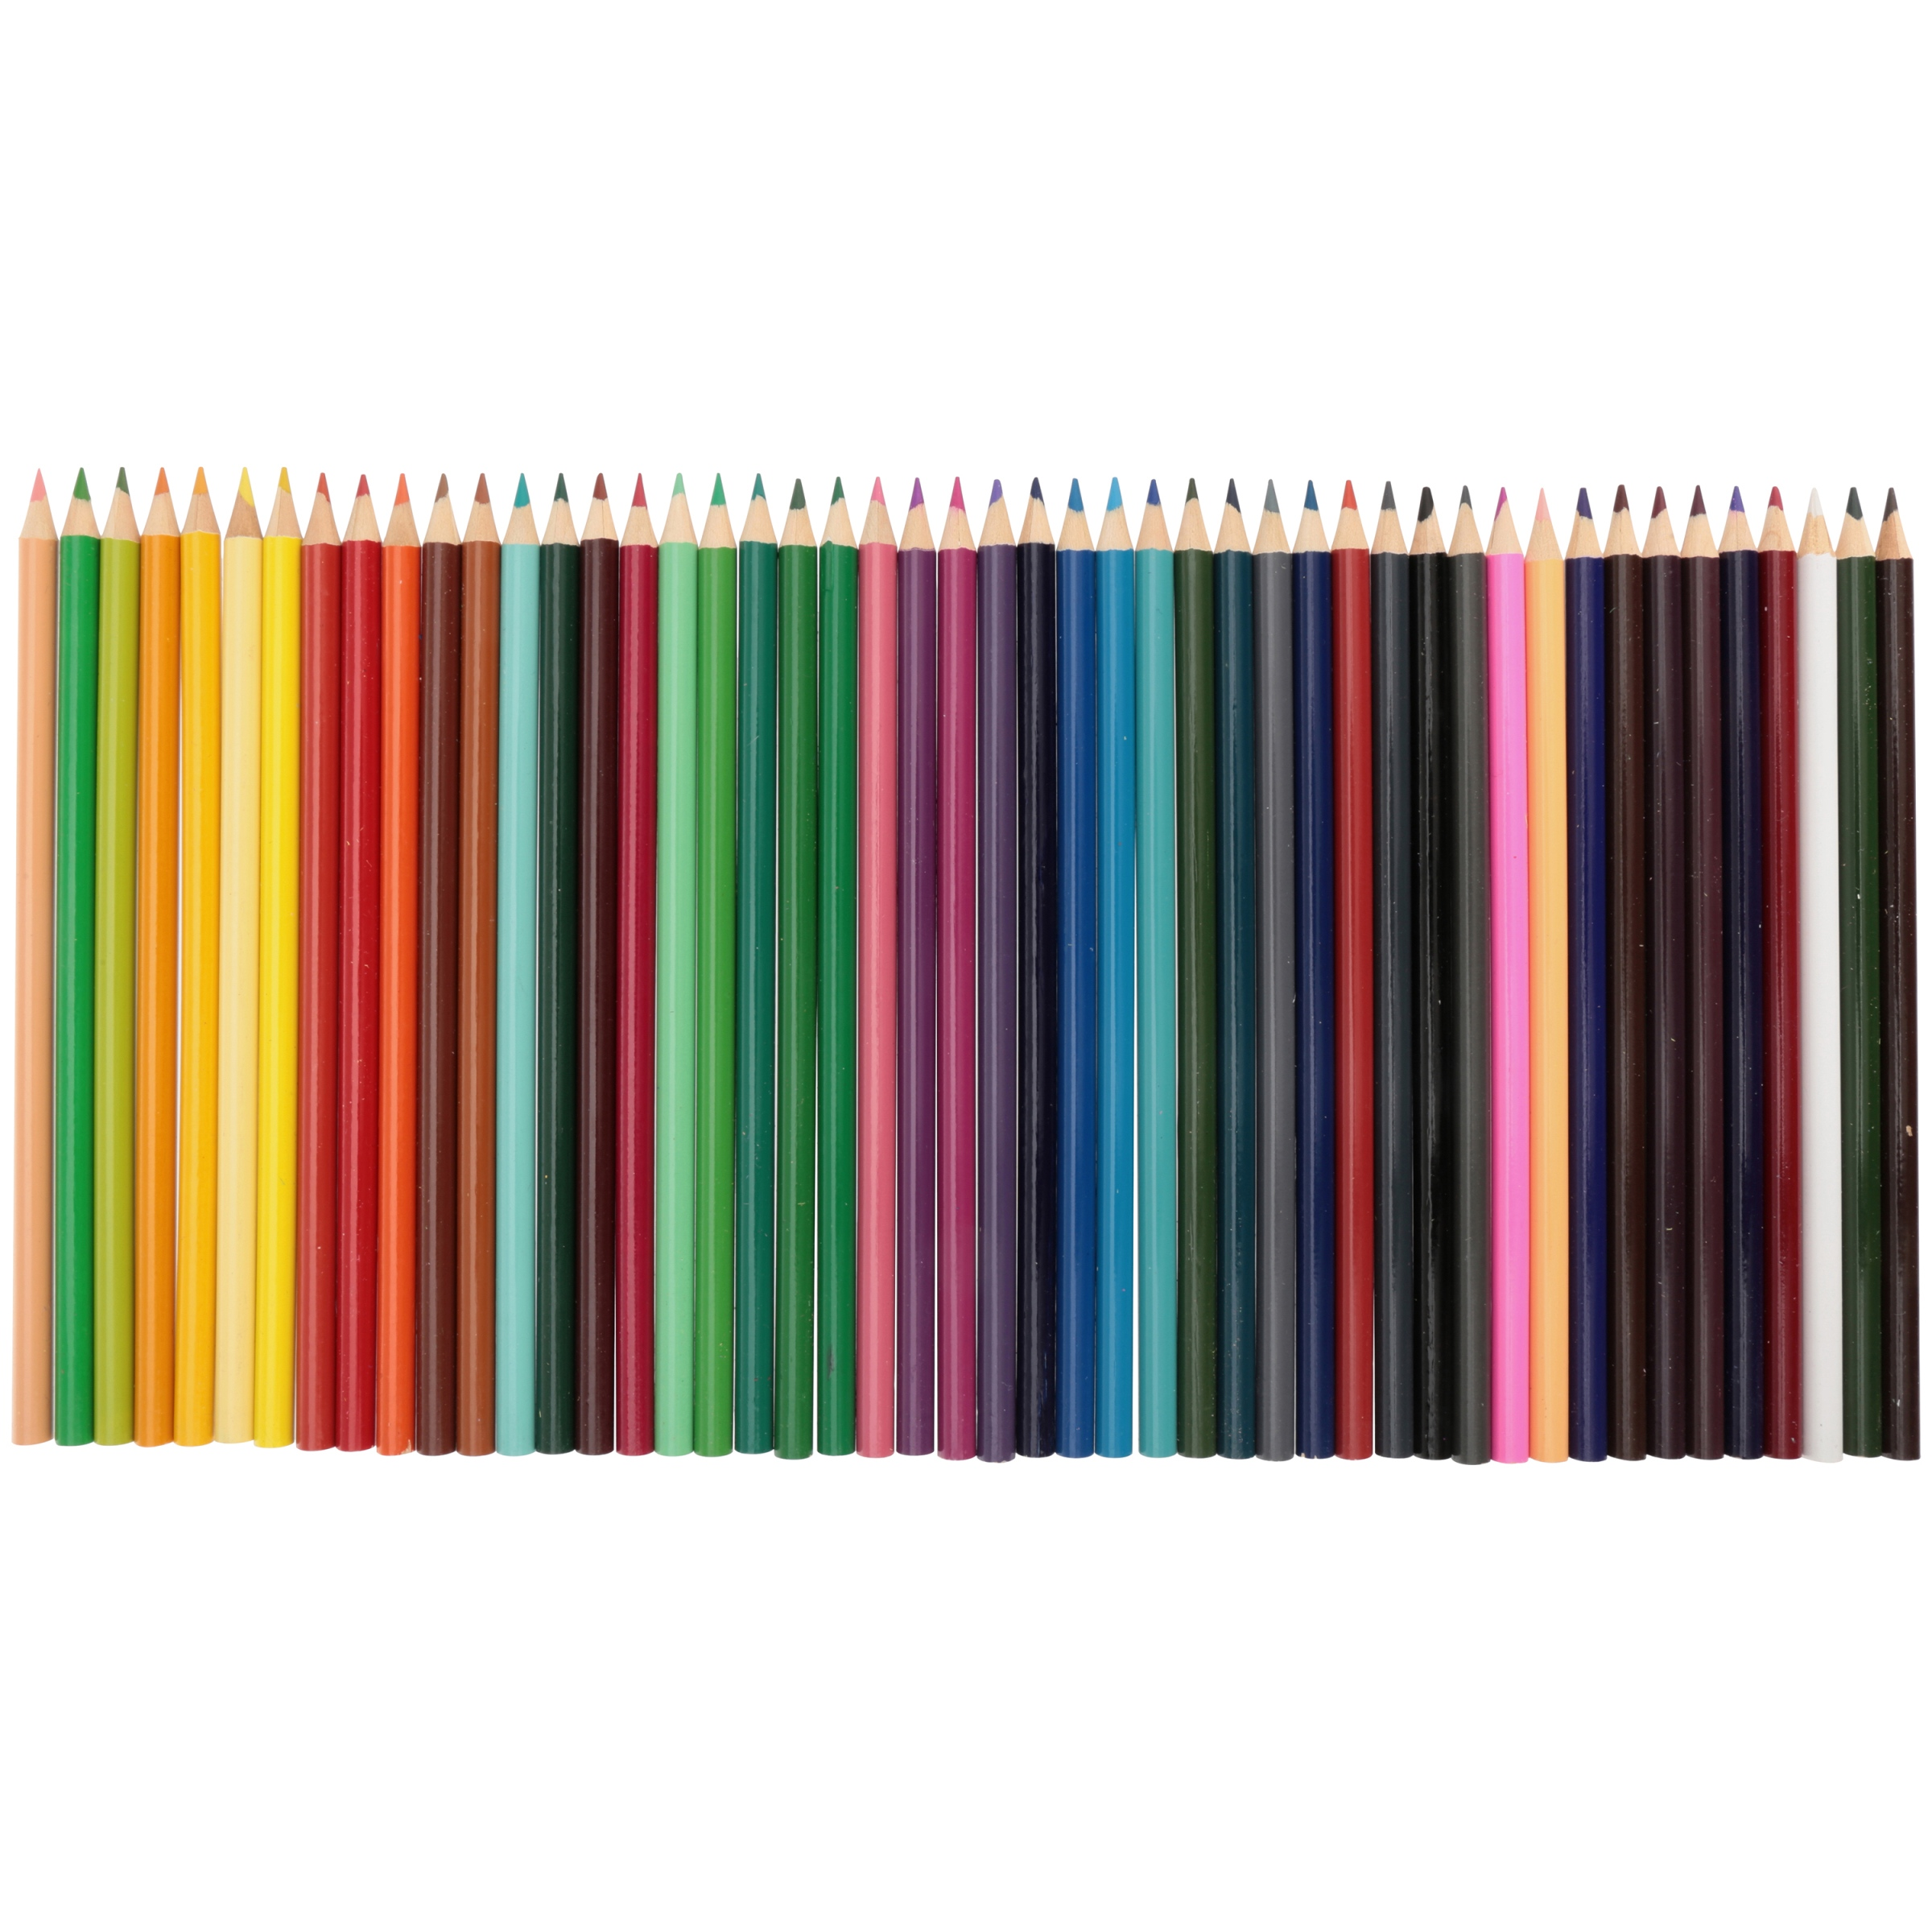 Leasure Arts Colored Pencils, 48 Count